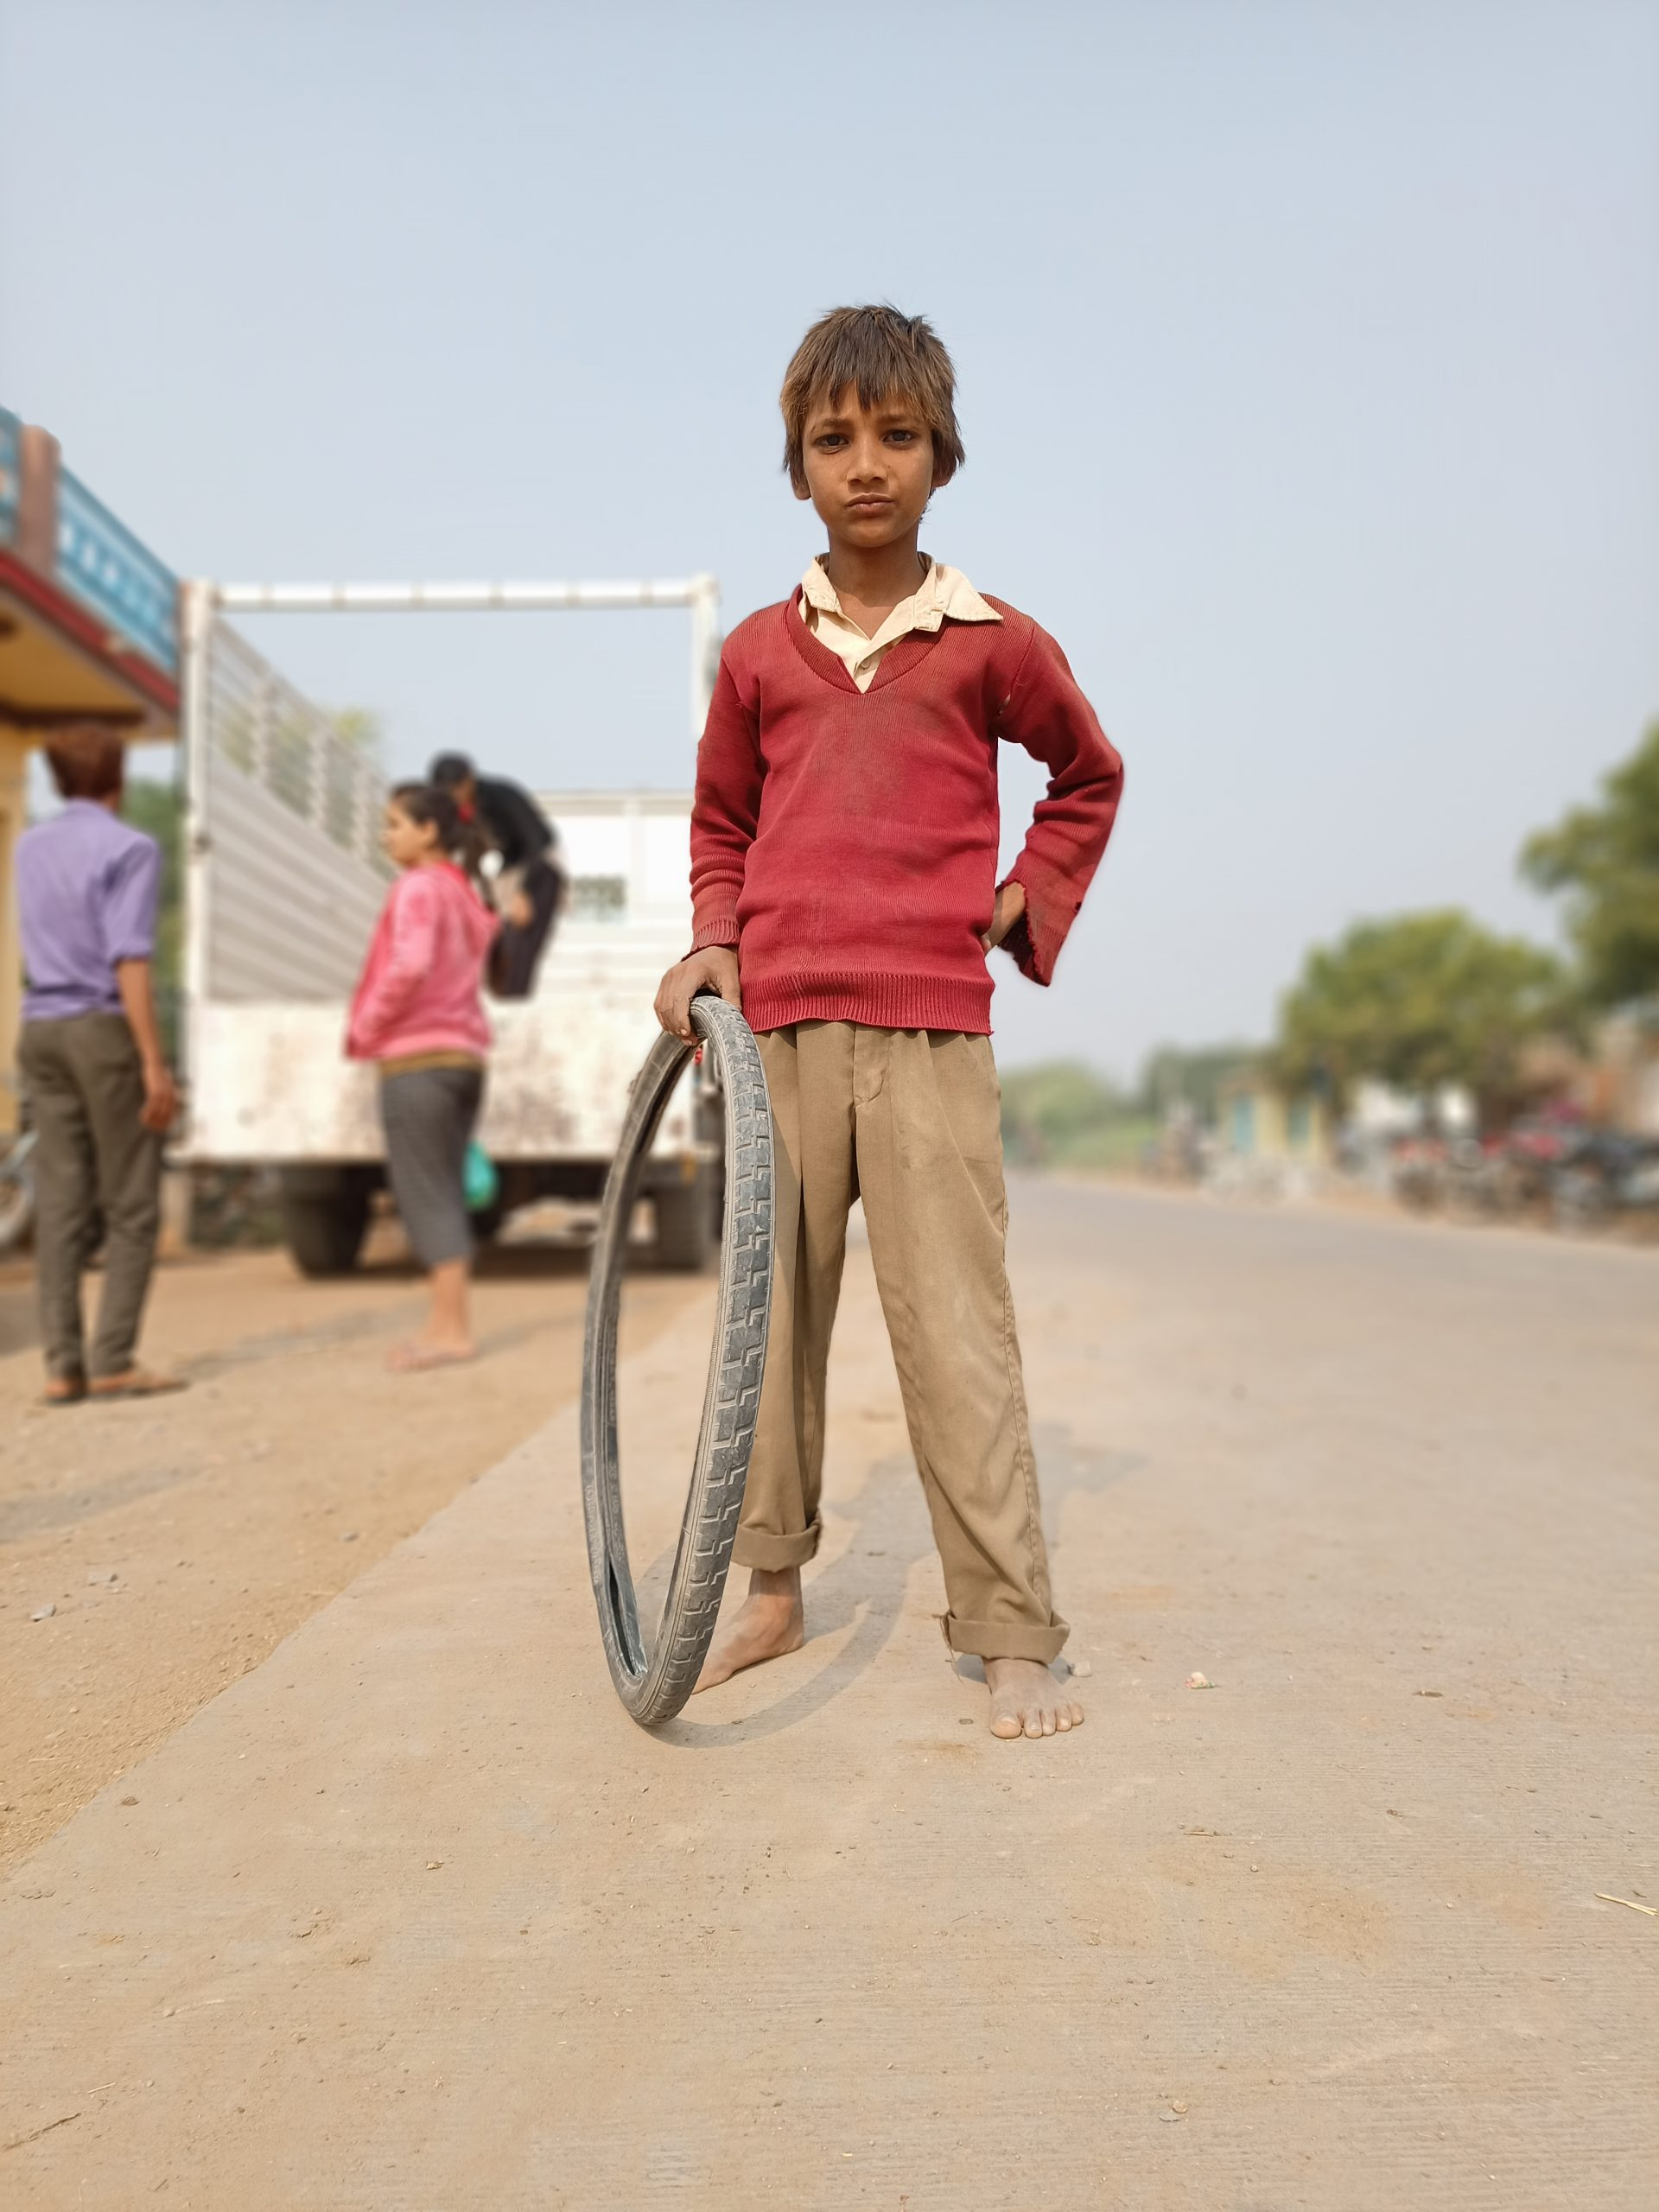 A village boy playing with bicycle tire